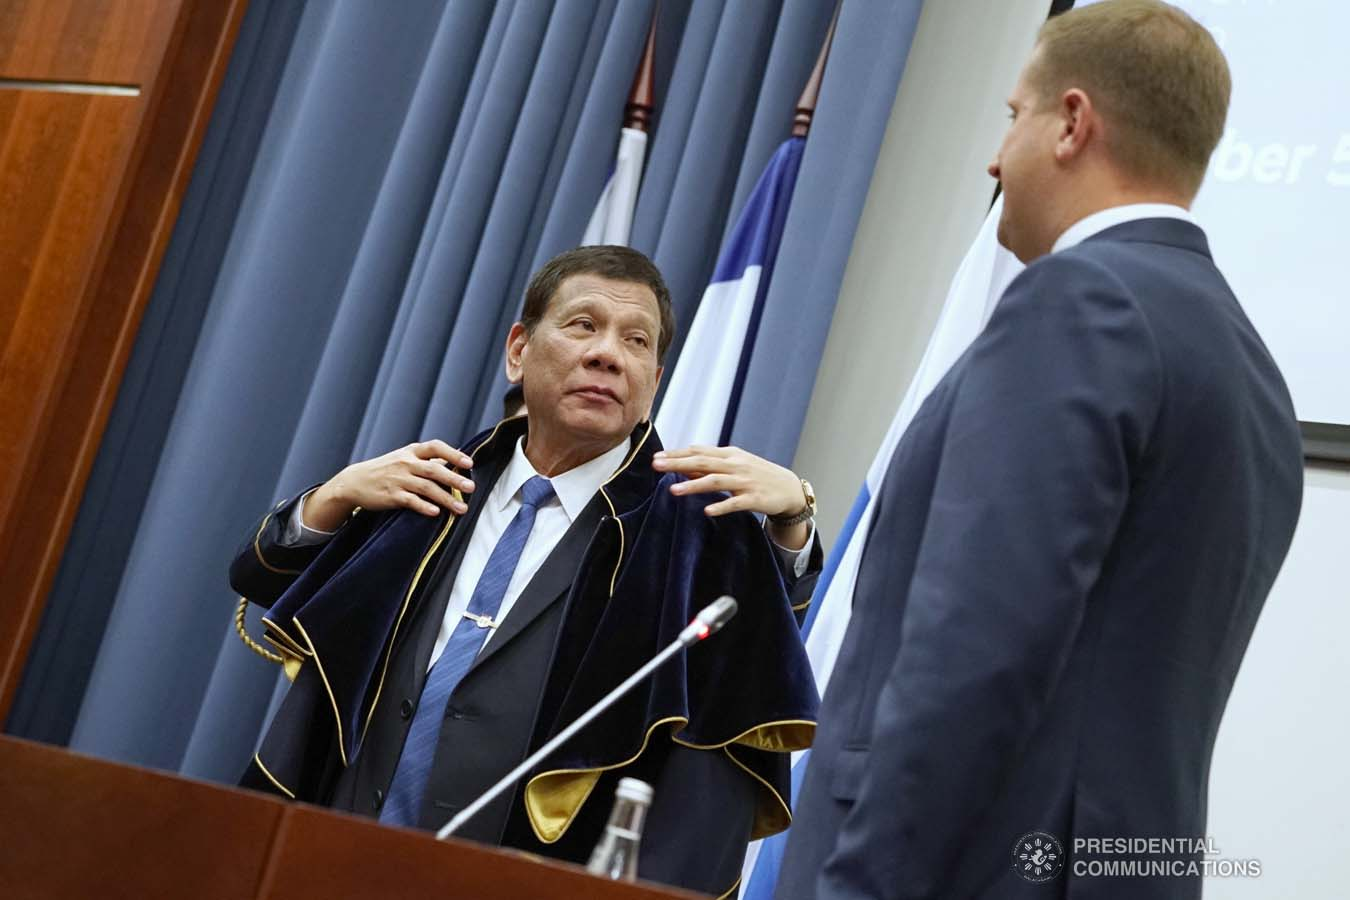 President Rodrigo Roa Duterte dons the robe and toga after receiving an honorary doctorate degree diploma from Moscow State Institute of International Relations (MGIMO) University Vice Rector Artem Malgin during a ceremony at the MGIMO University in Moscow, Russian Federation on October 05, 2019. KING RODRIGUEZ/PRESIDENTIAL PHOTO